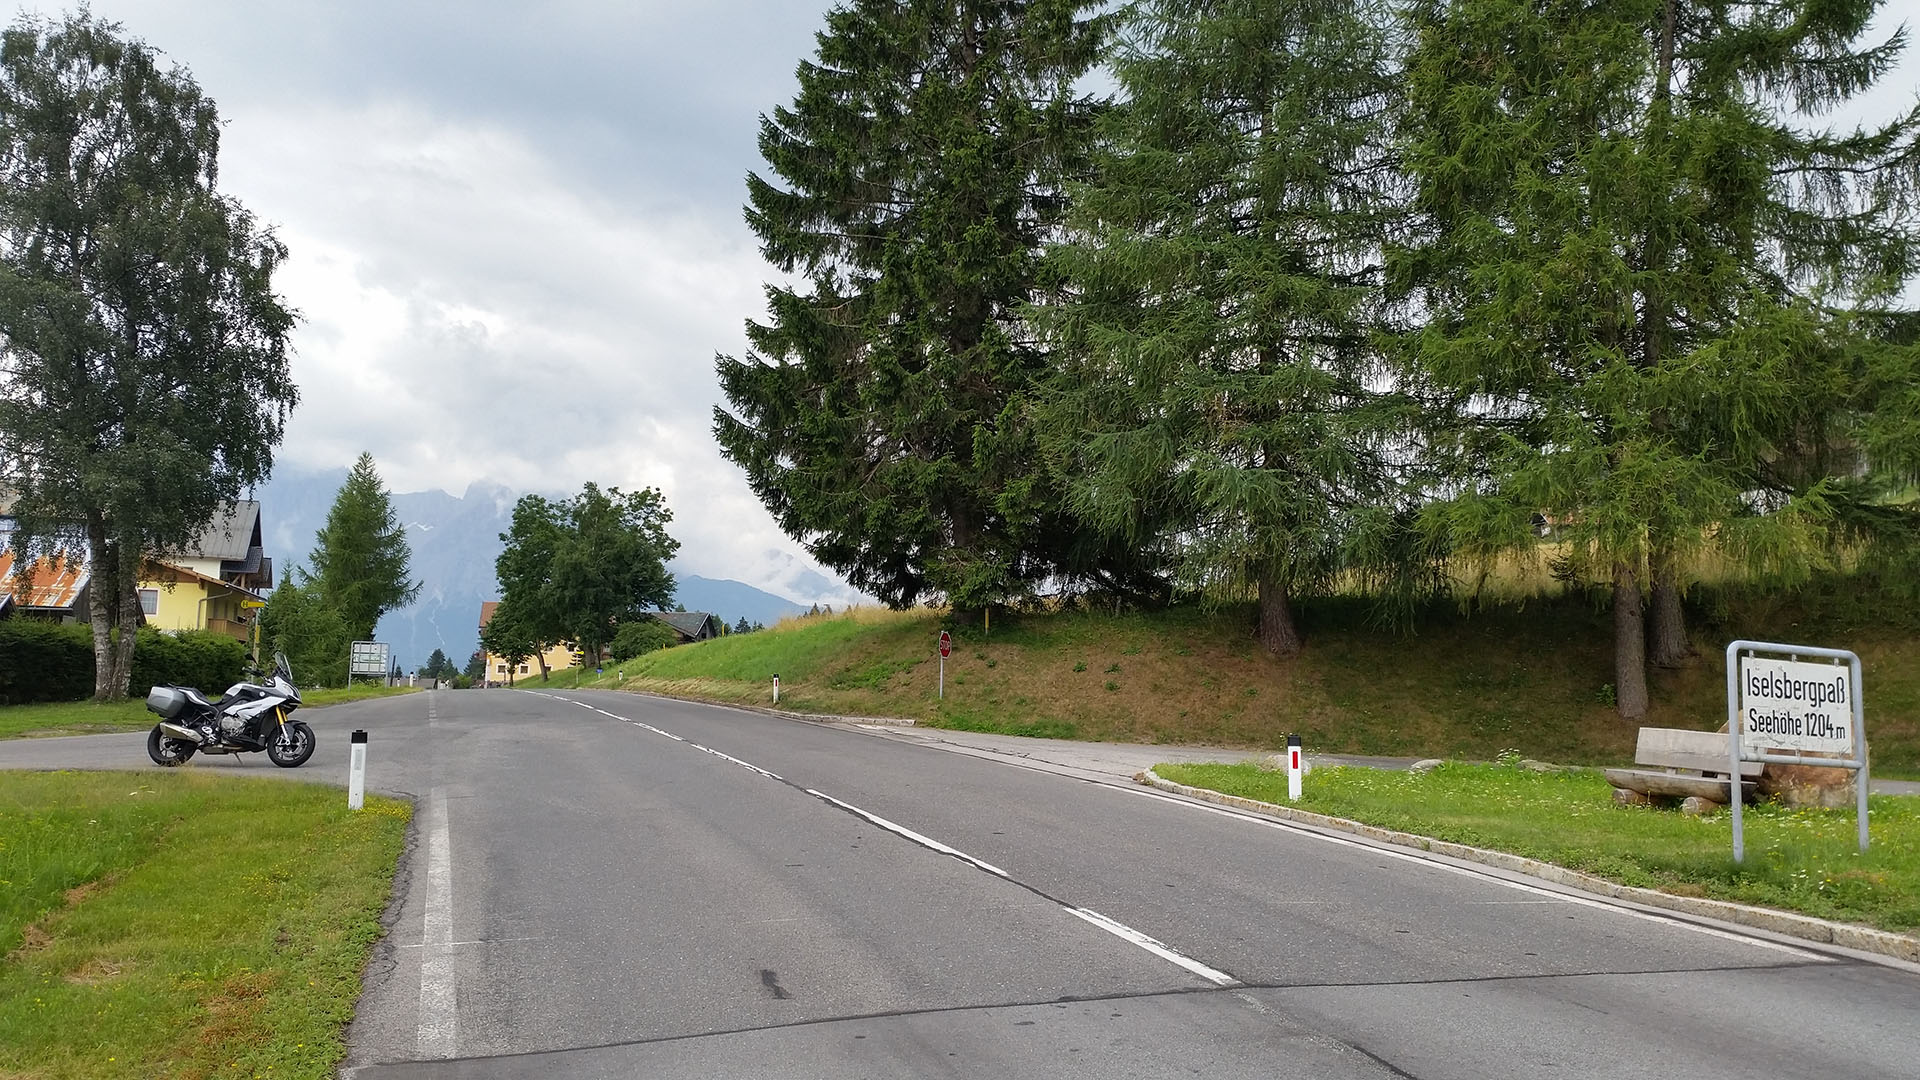 1204 - A - Iselsberg-Pass